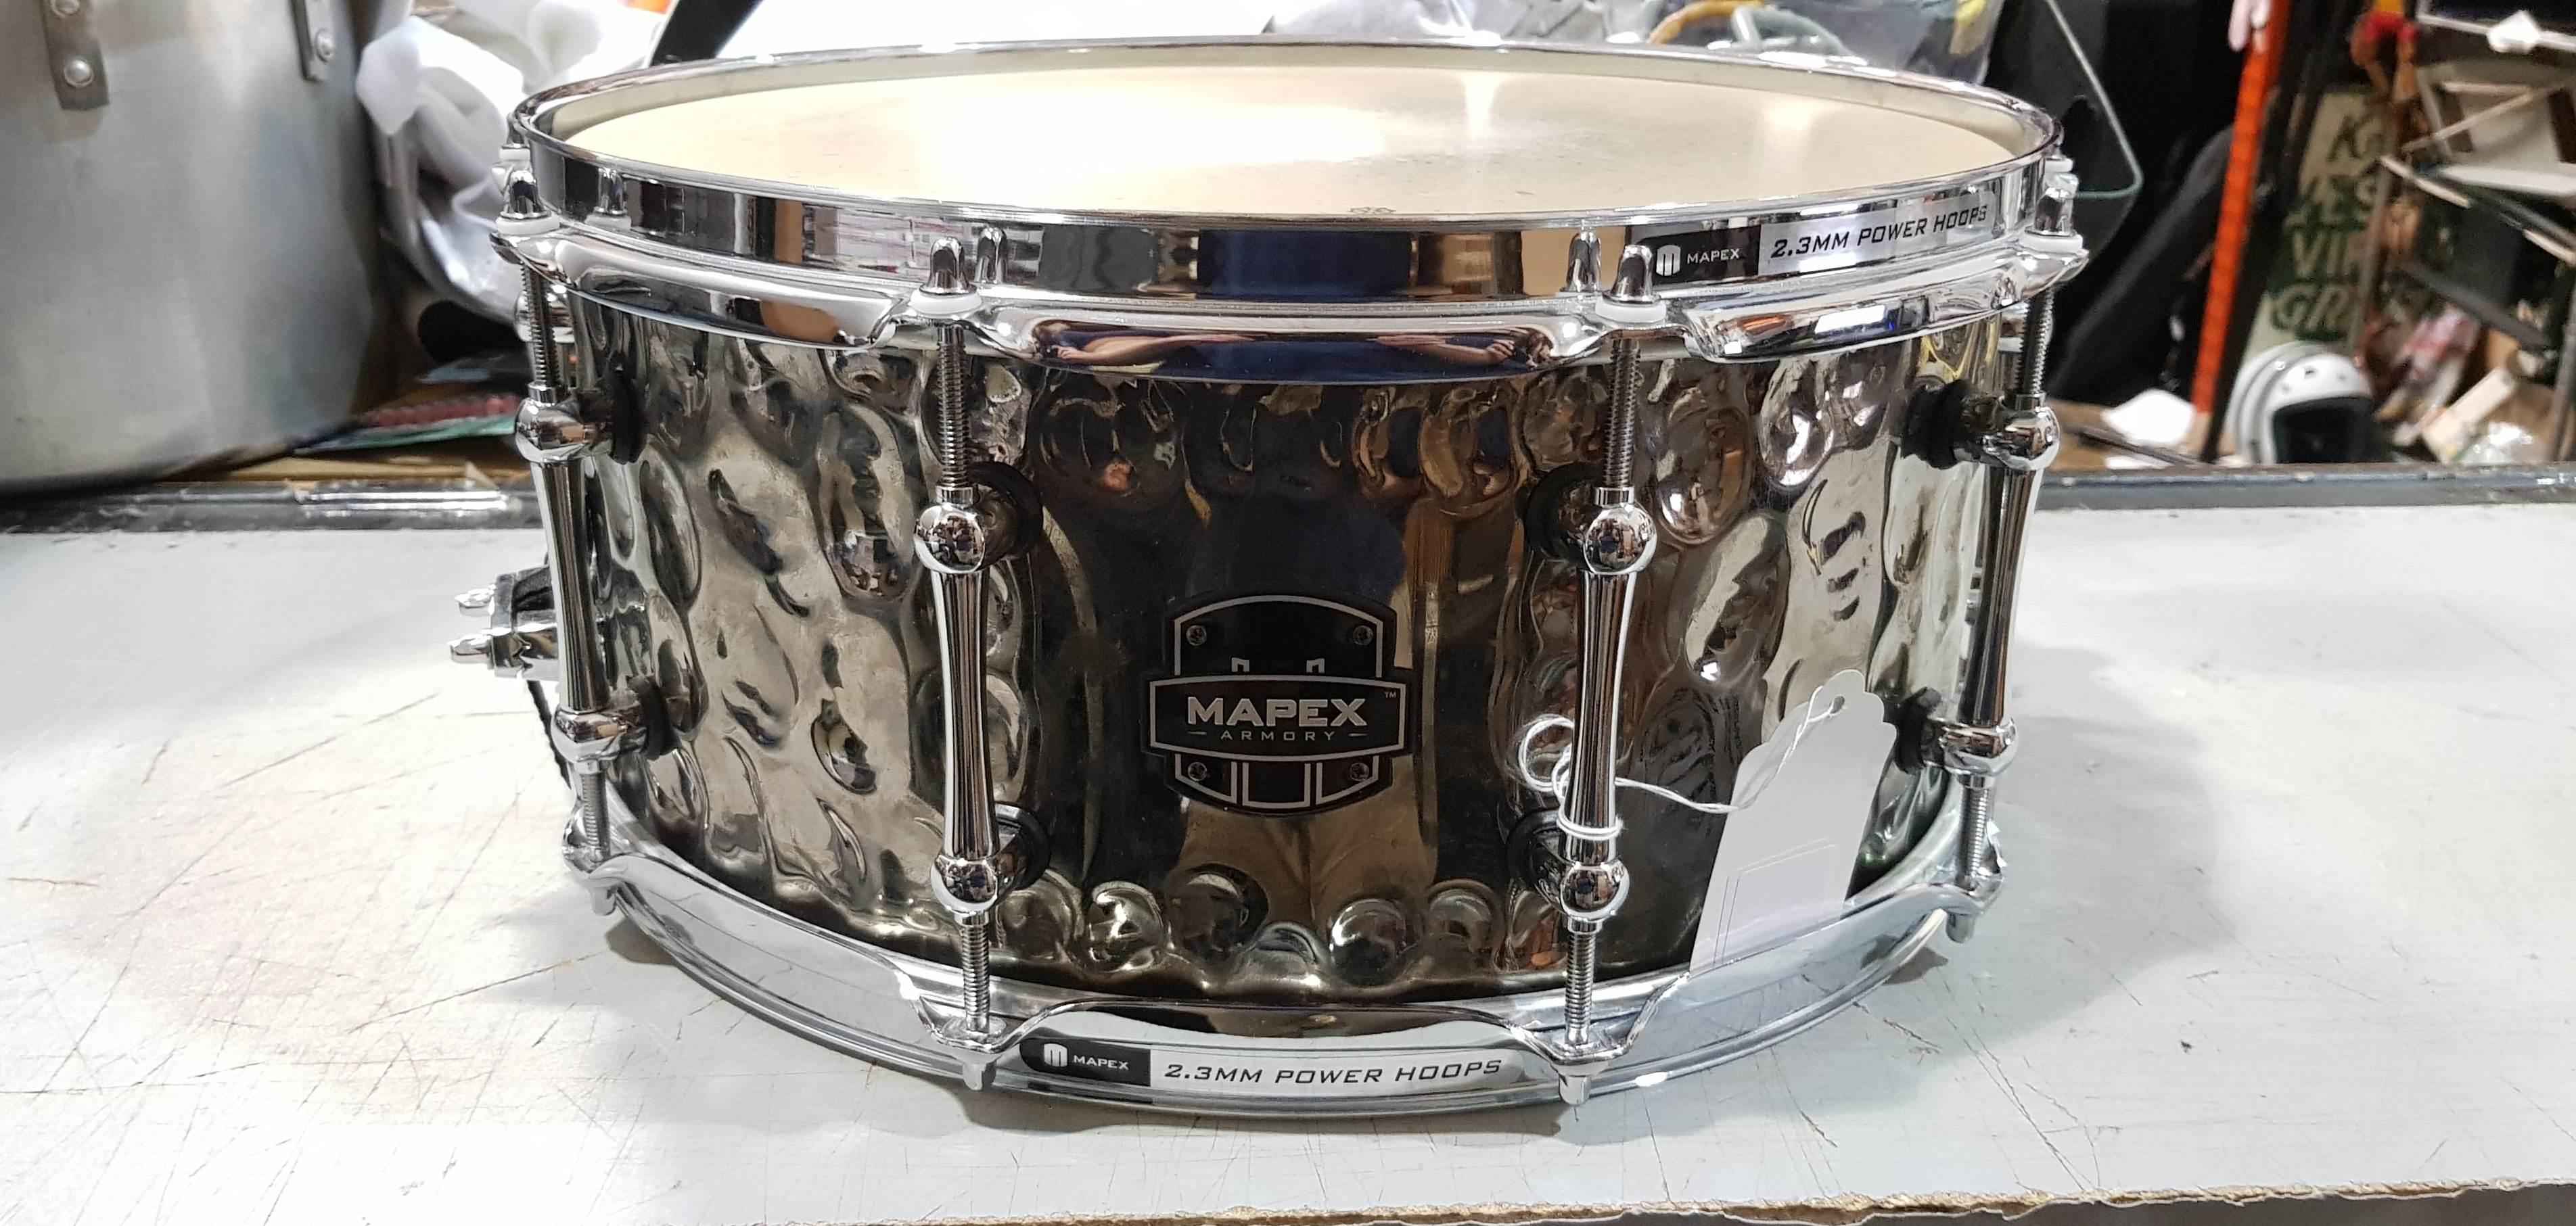 MAPEX ARMORY SERIES Hammered Daisy Cutter Snare Drum 6.5